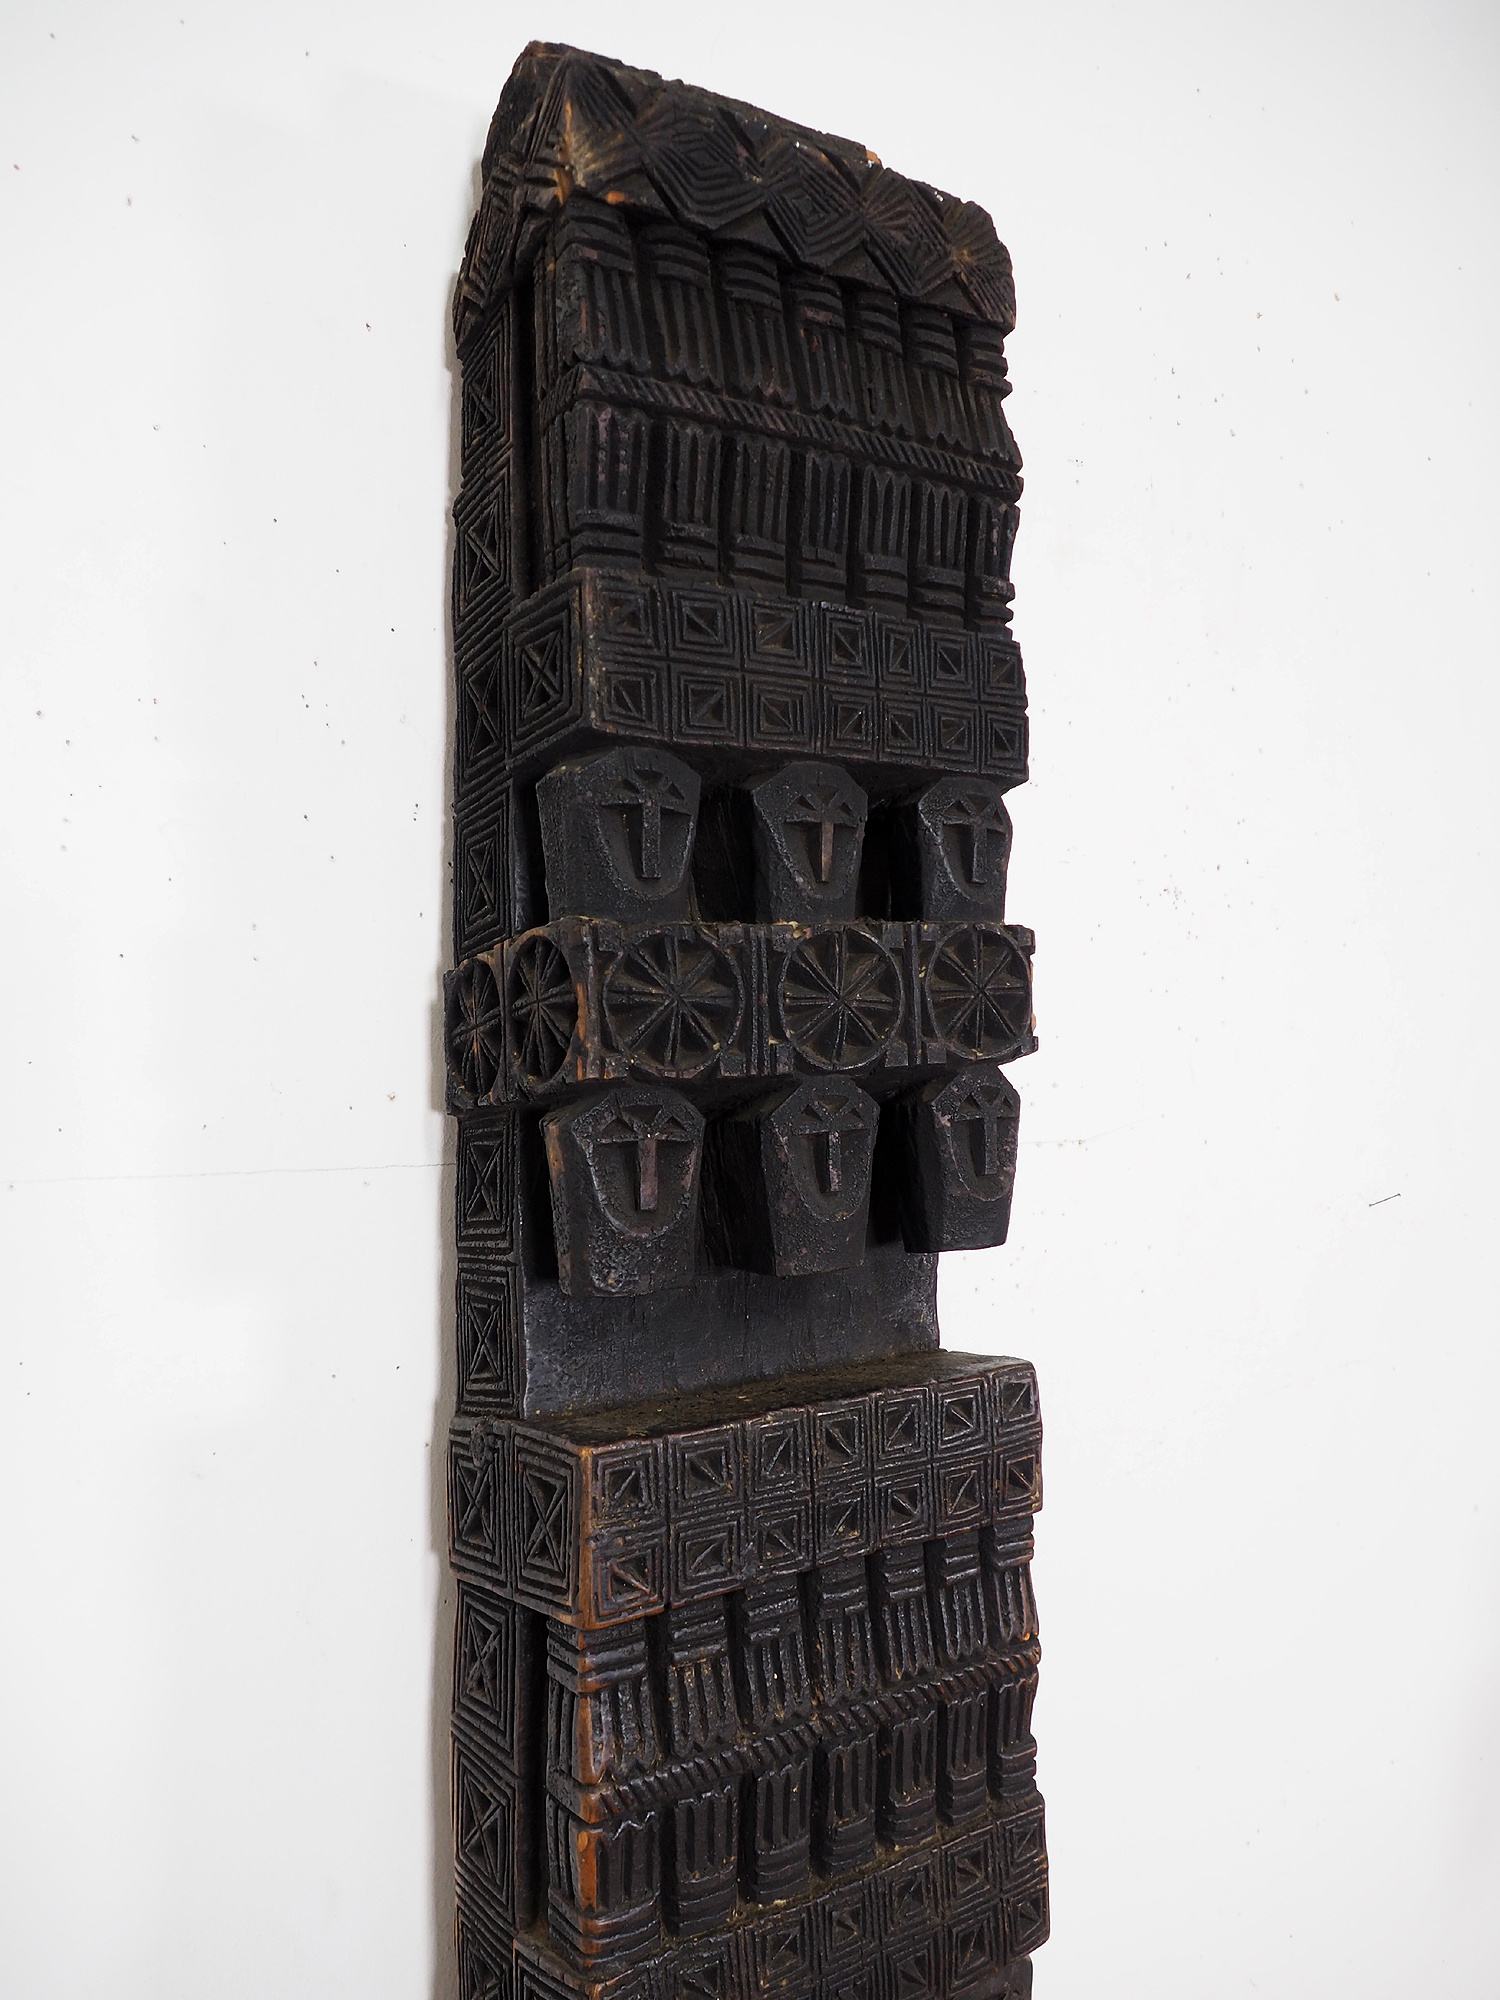 antique orient solid hand-carved wooden Pillar column from Nuristan Afghanistan  (ULM)